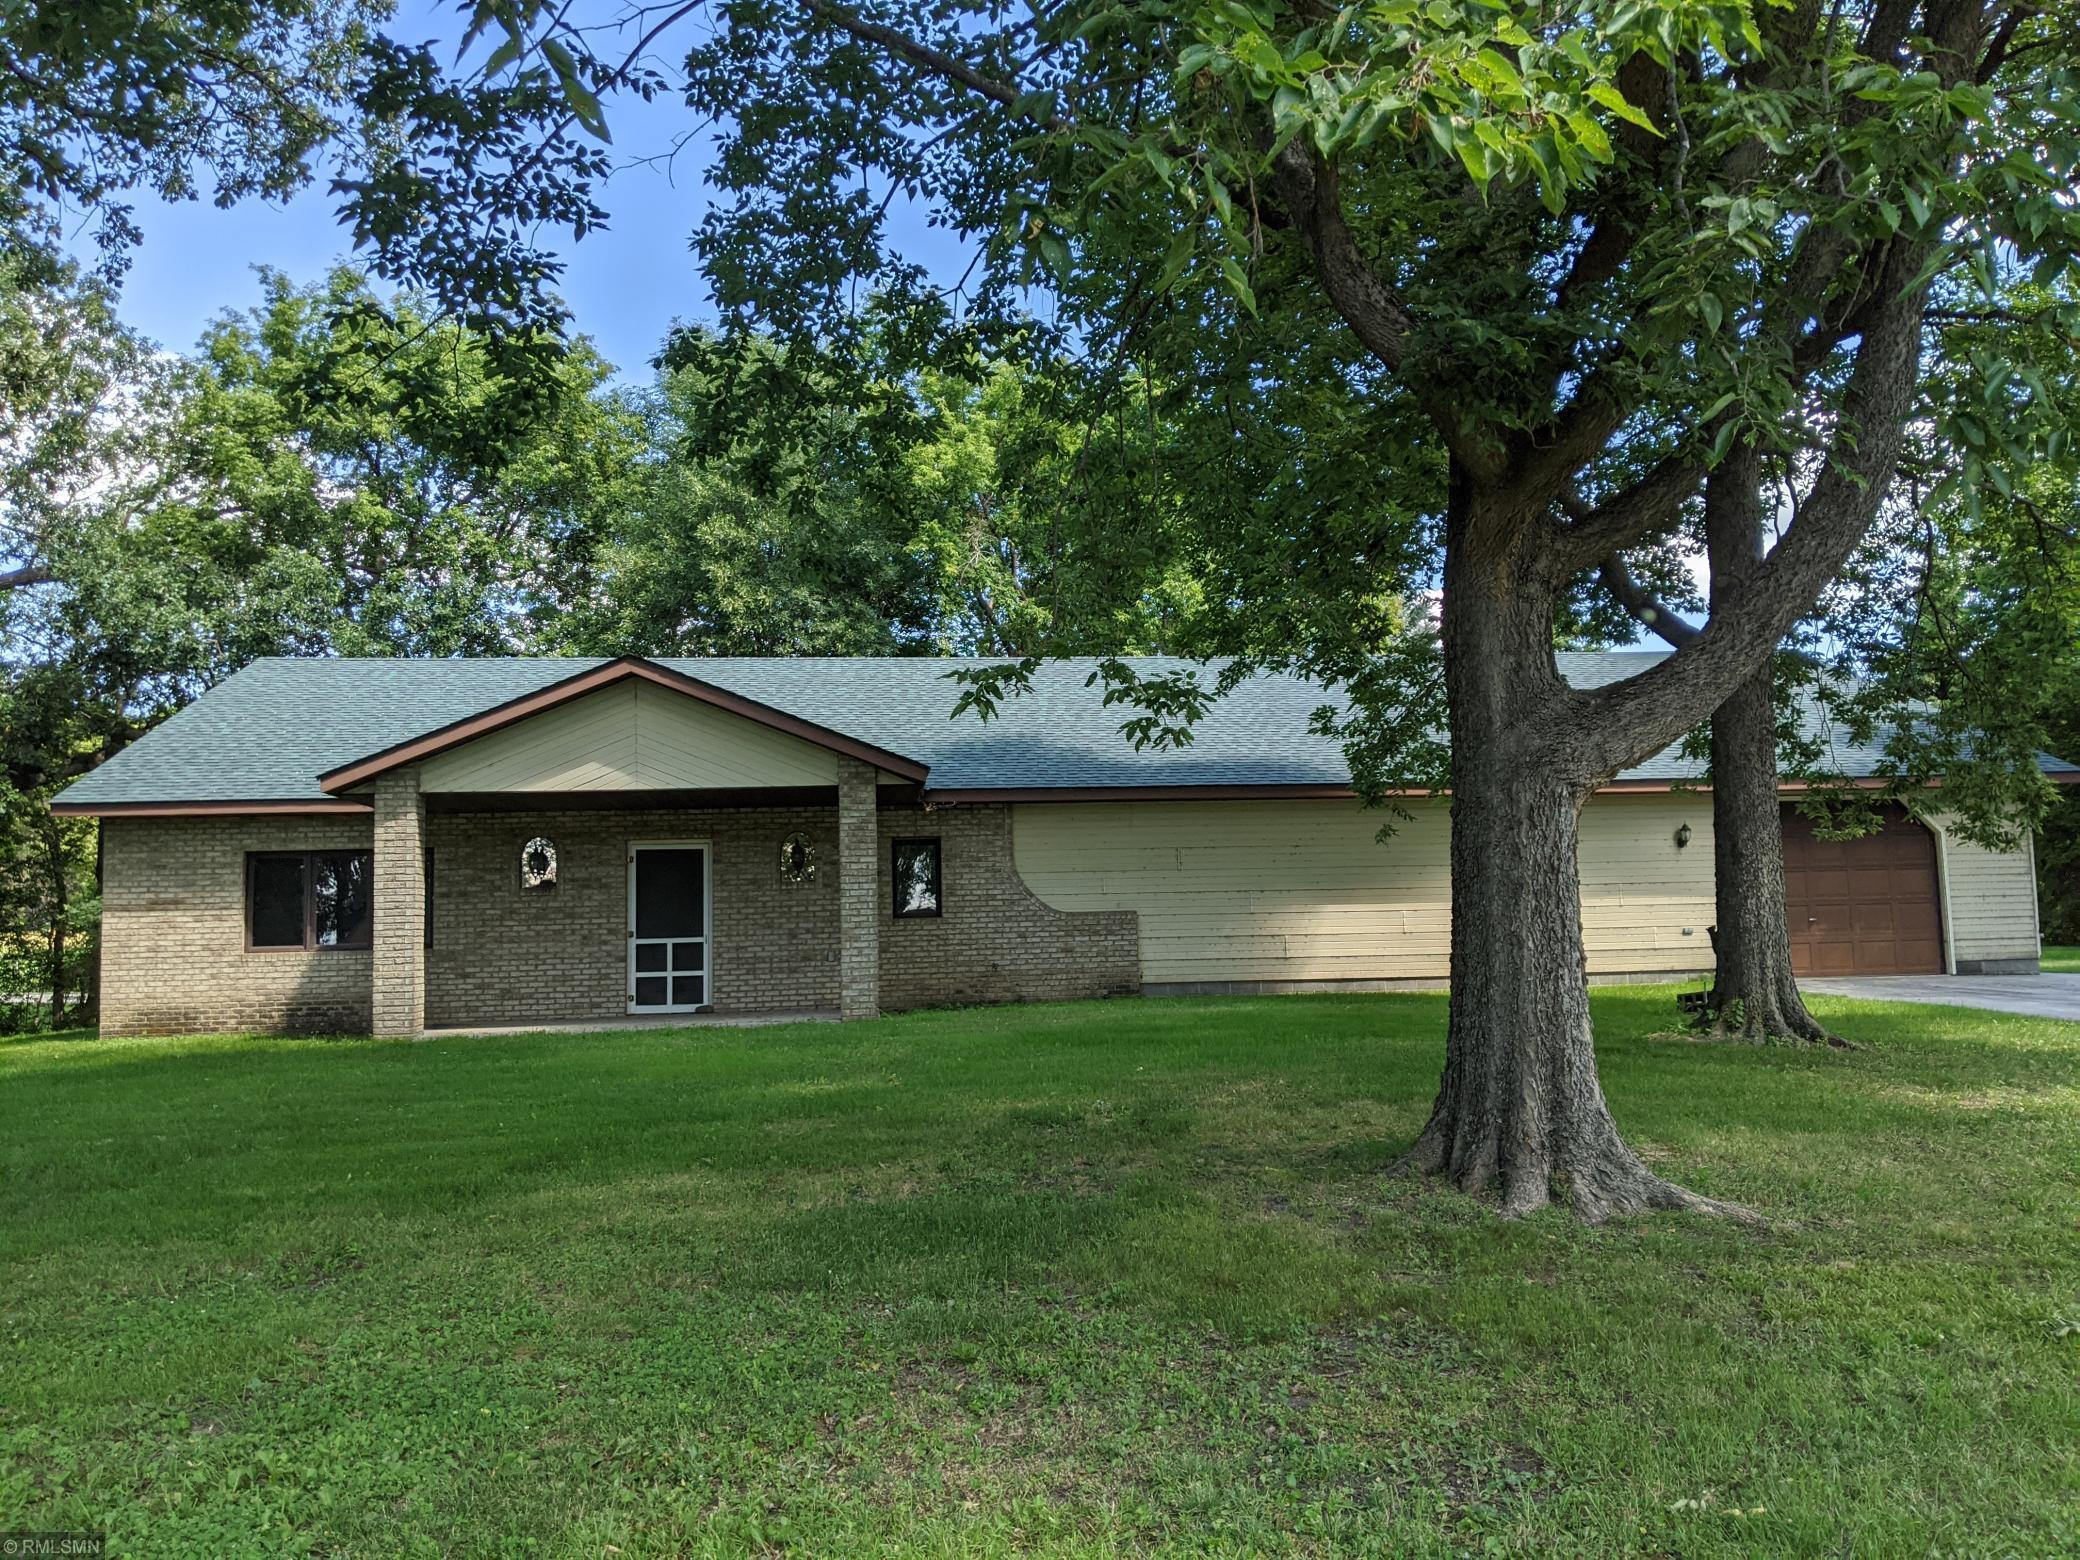 7498 159th Street NE Property Photo - Atwater, MN real estate listing